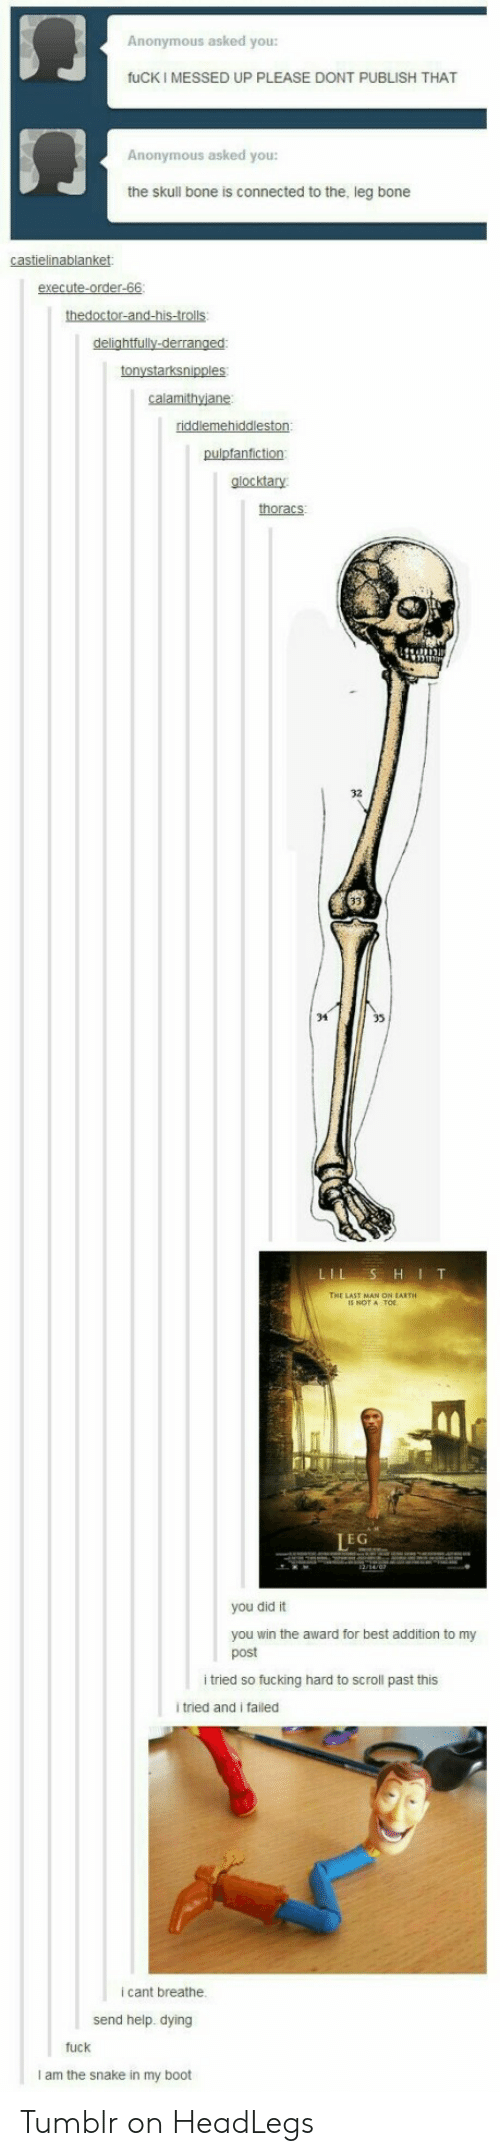 Tumblr On: Anonymous asked you:  fuCK I MESSED UP PLEASE DONT PUBLISH THAT  Anonymous asked you:  the skull bone is connected to the, leg bone  castielinablanket:  execute-order-66  thedoctor-and-his-trolls:  delightfully-derranged  tonystarksnipples  calamithyjane  riddlemehiddleston  pulpfanfiction  glocktary  thoracs  LIL S HIT  LEG  you did it  you win the award for best addition to my  post  i tried so fucking hard to scroll past this  i tried and i failed  i cant breathe.  send help. dying  fuck  I am the snake in my boot Tumblr on HeadLegs